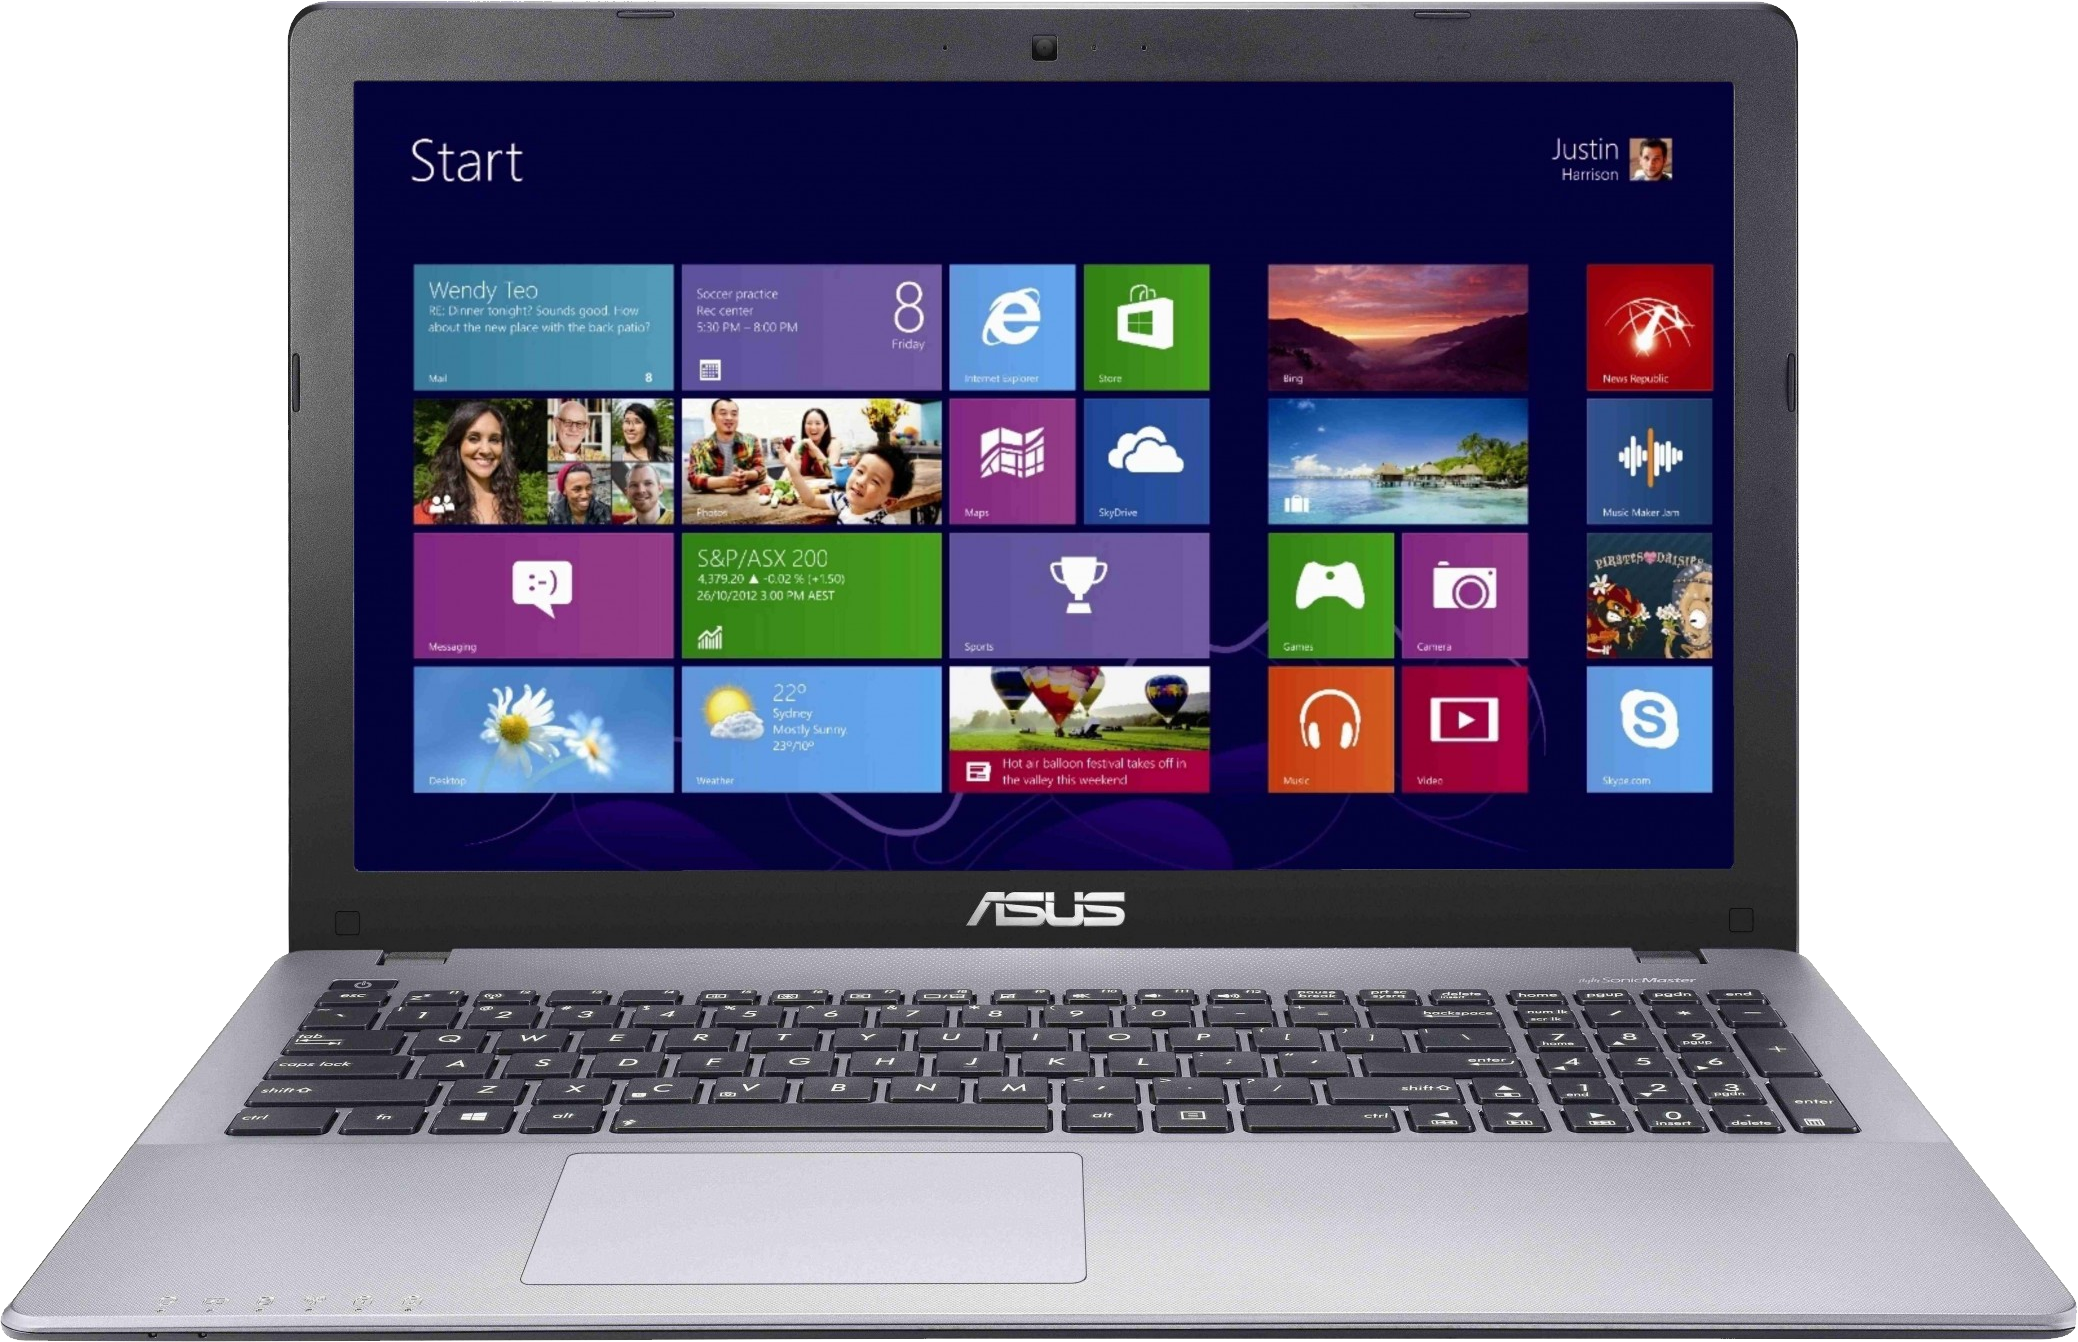 Laptop png. Laptops images notebook image